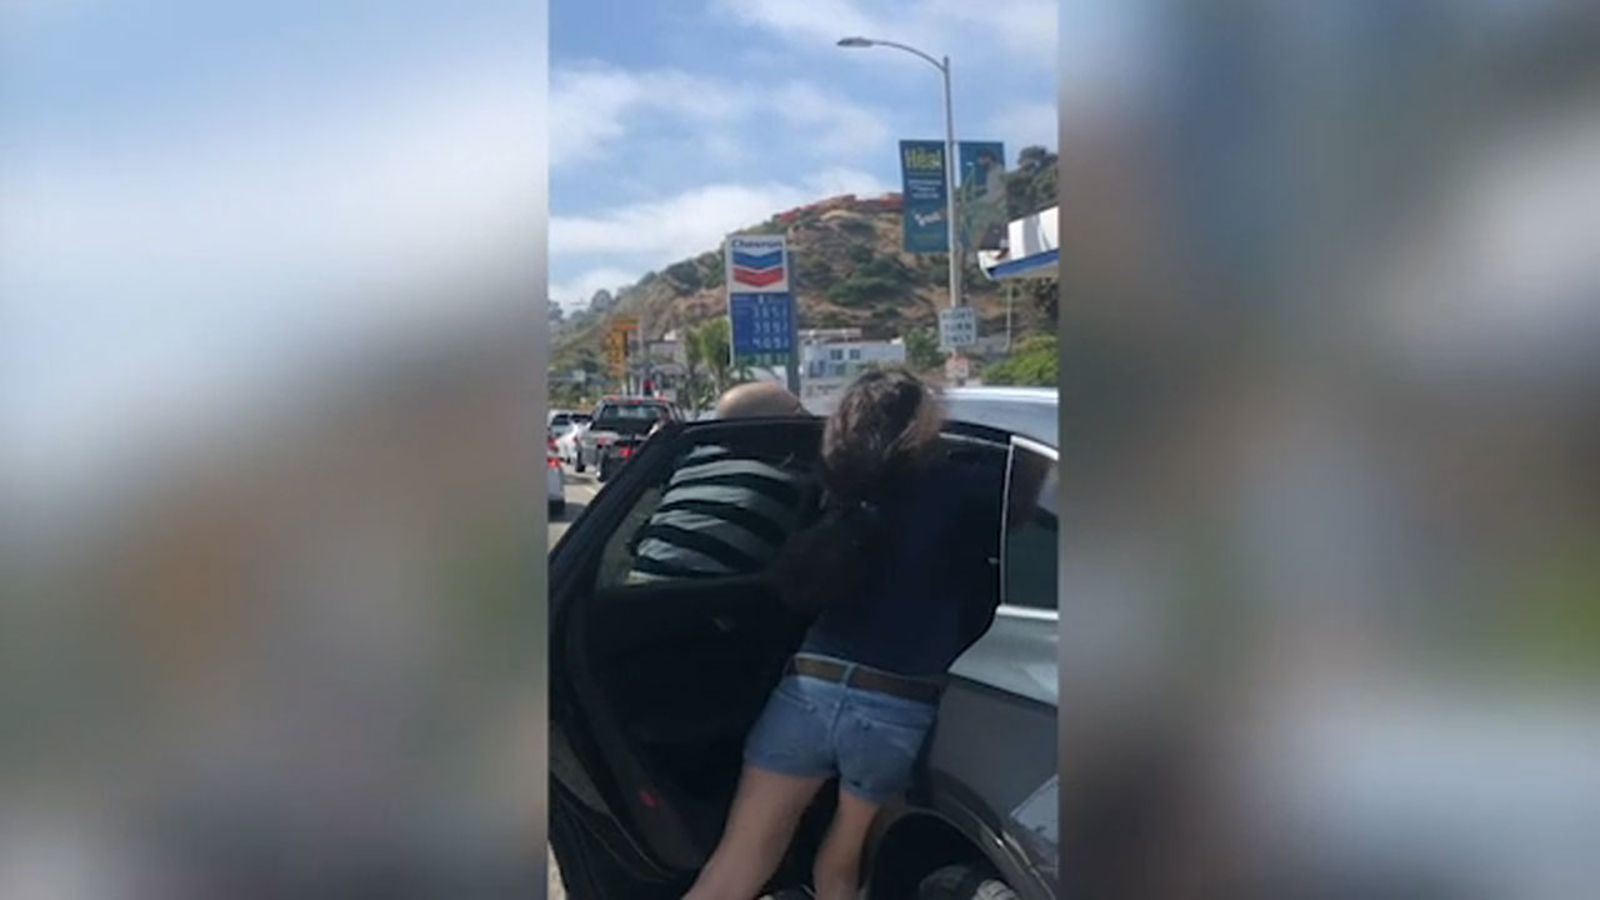 VIDEO: Apparent road rage confrontation escalates into attack on Pacific Coast Highway